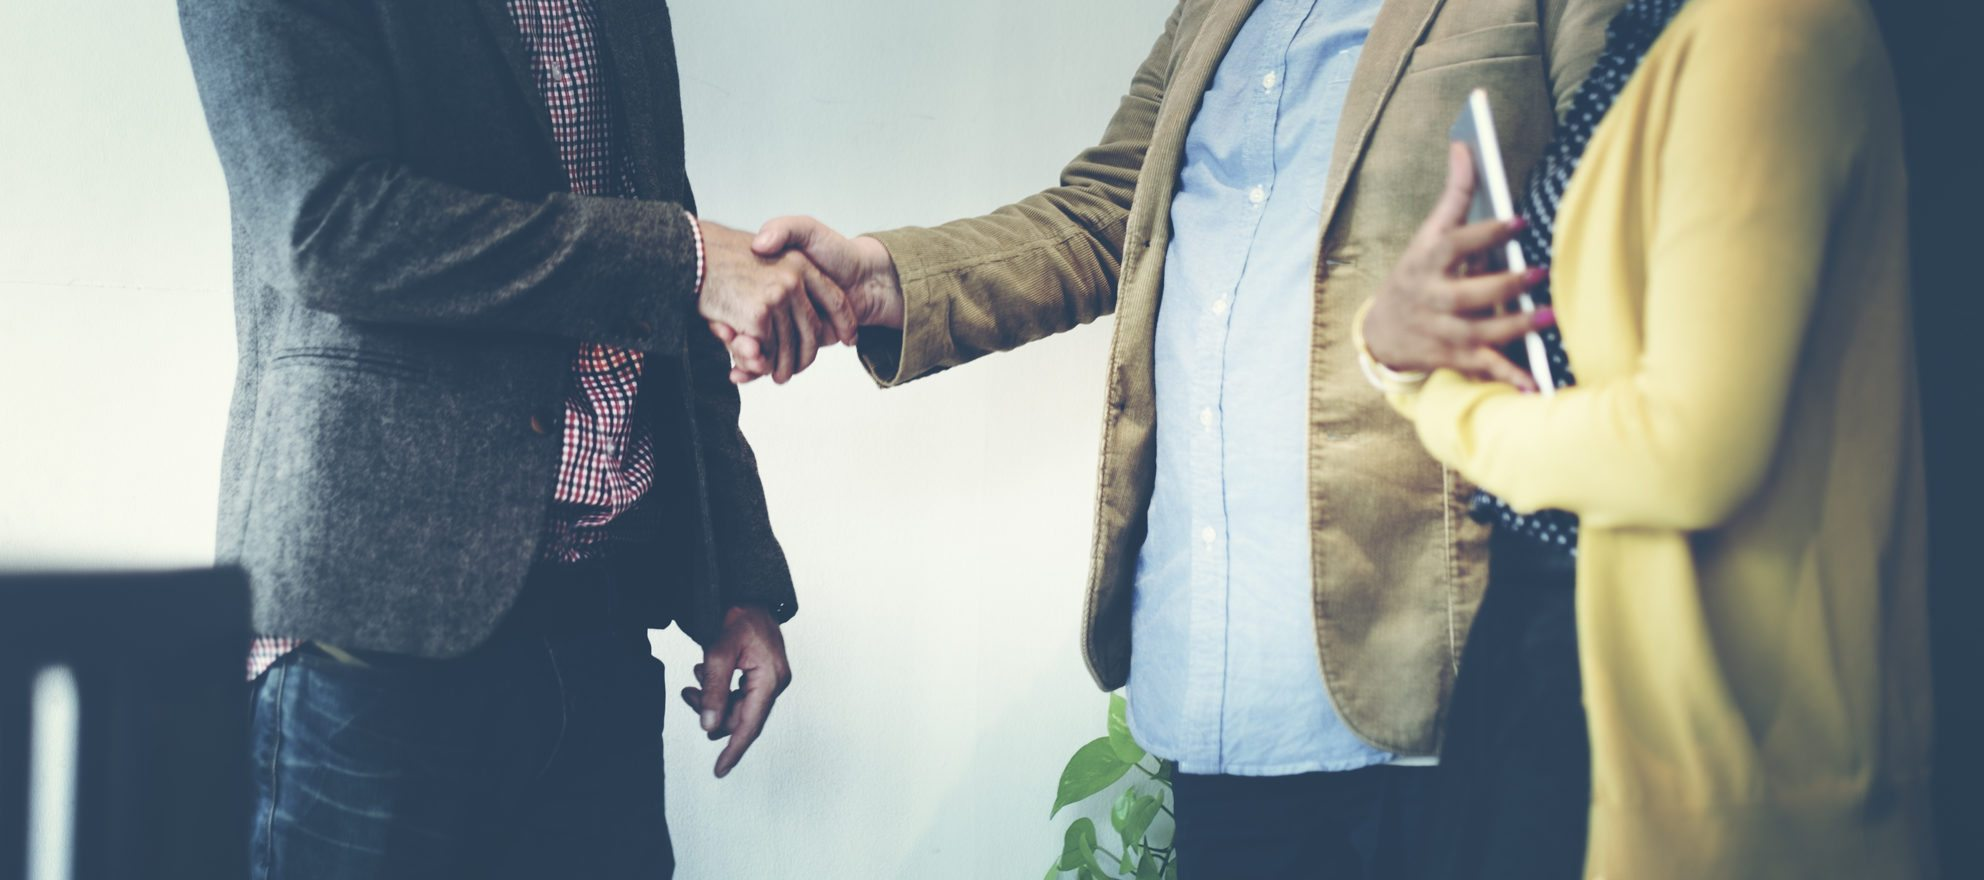 Handshake or fist bump -- how do you greet people?